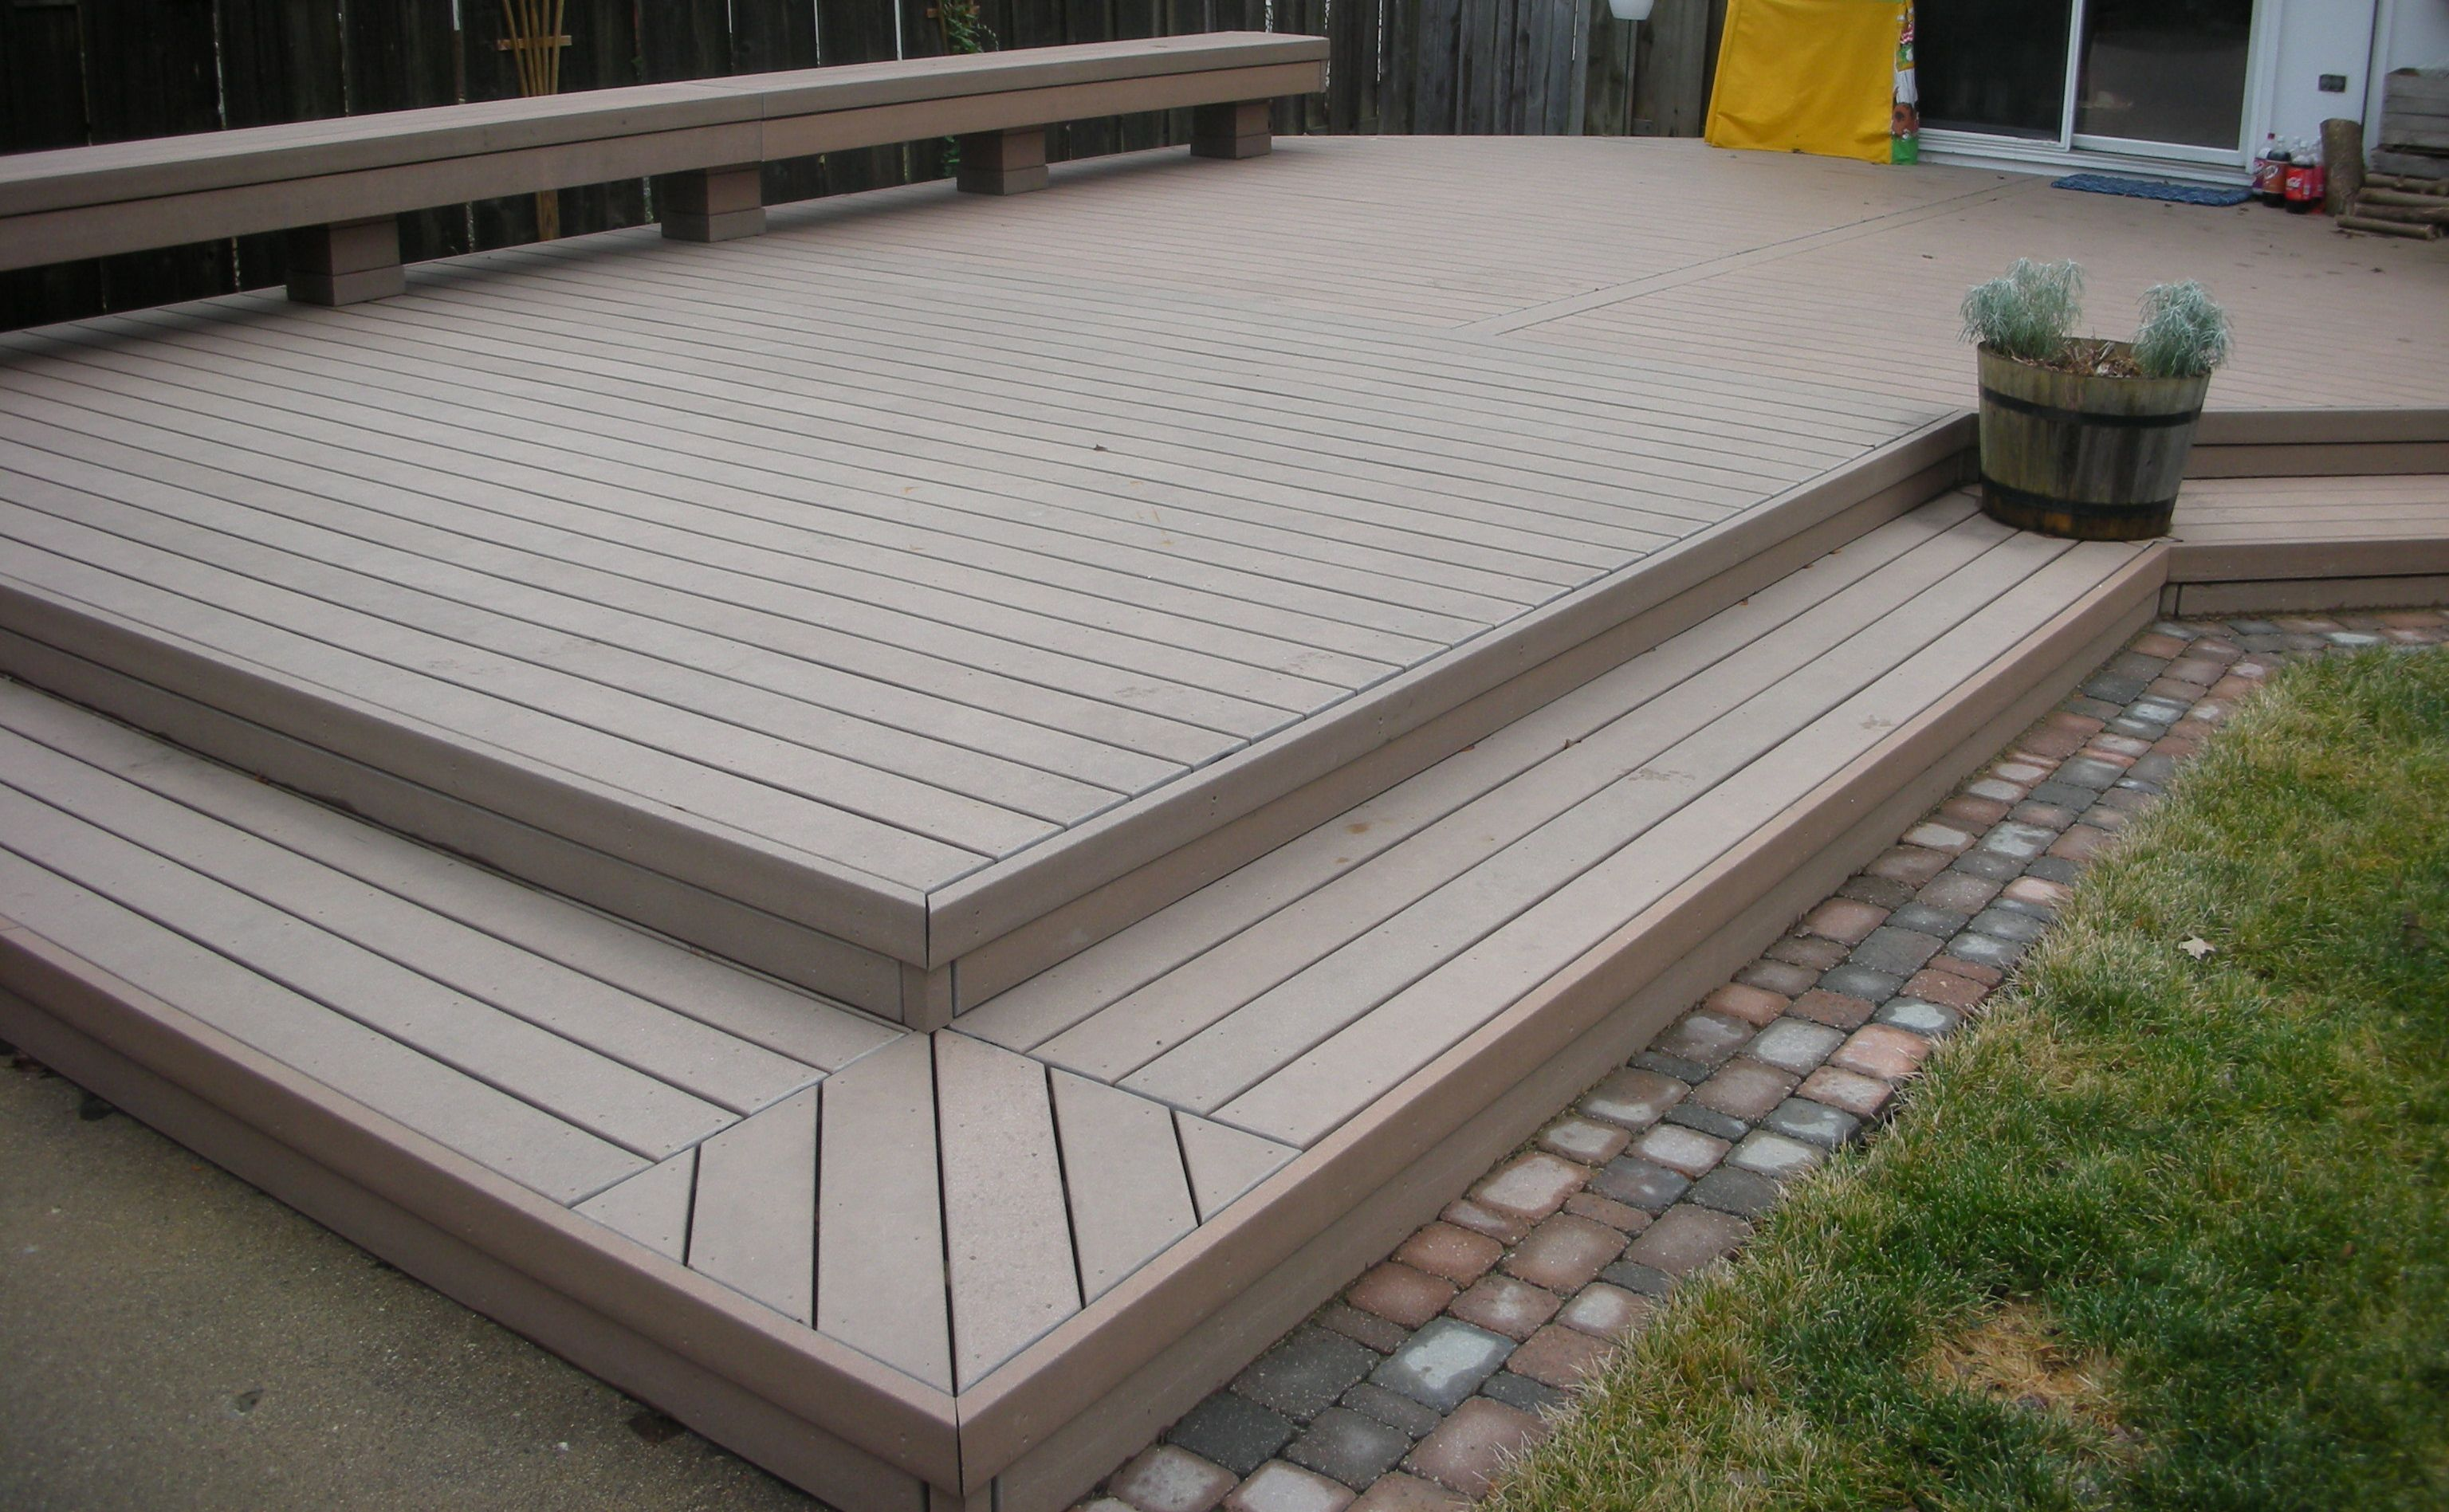 Two toned deck ideas ask home design for Garden decking colour ideas